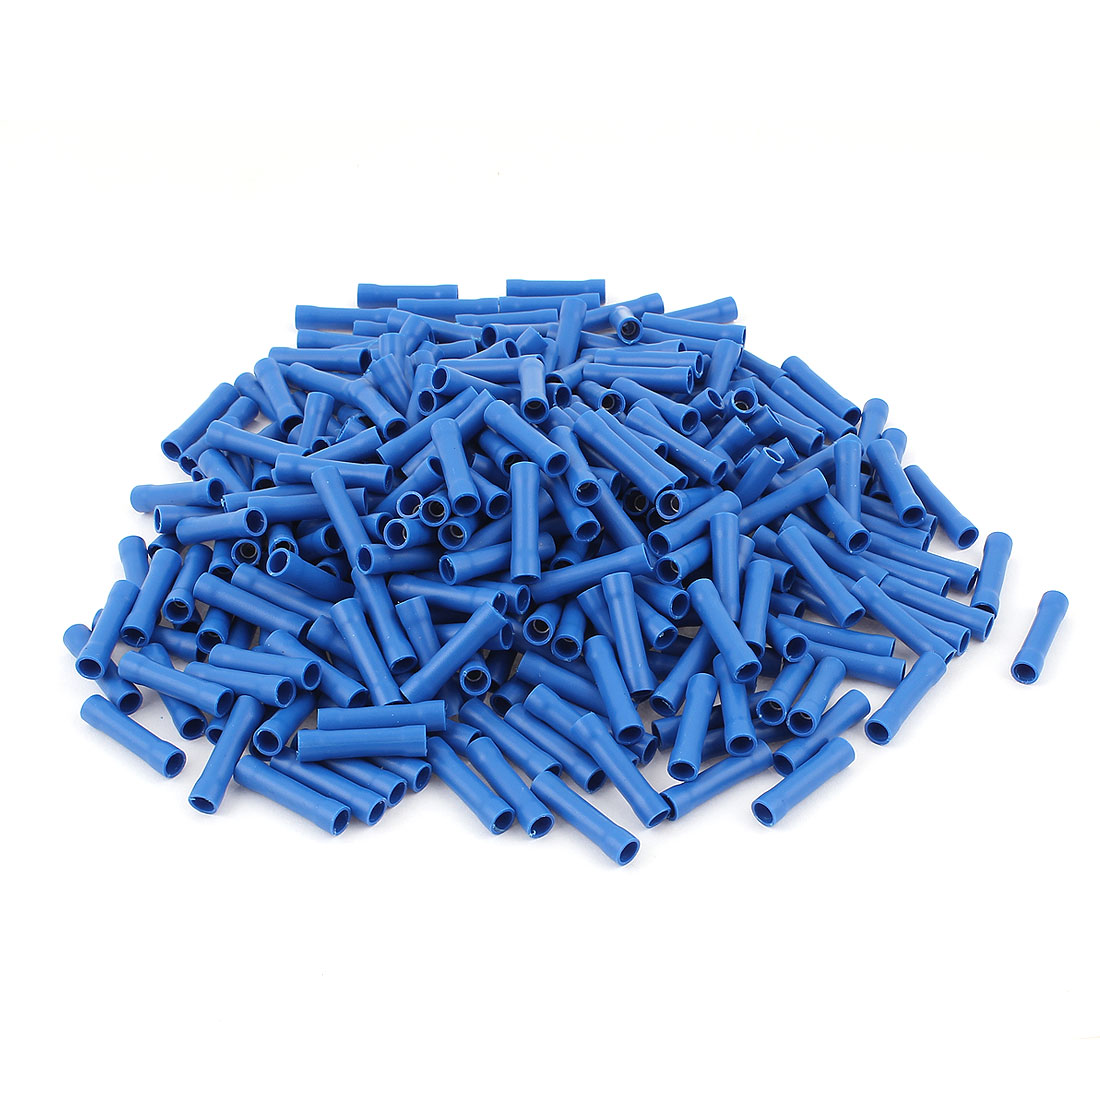 330Pcs Dual Ends Blue Plastic Sleeve Insulated Female Crimp Wiring Terminal Cable Connector for AWG16-14